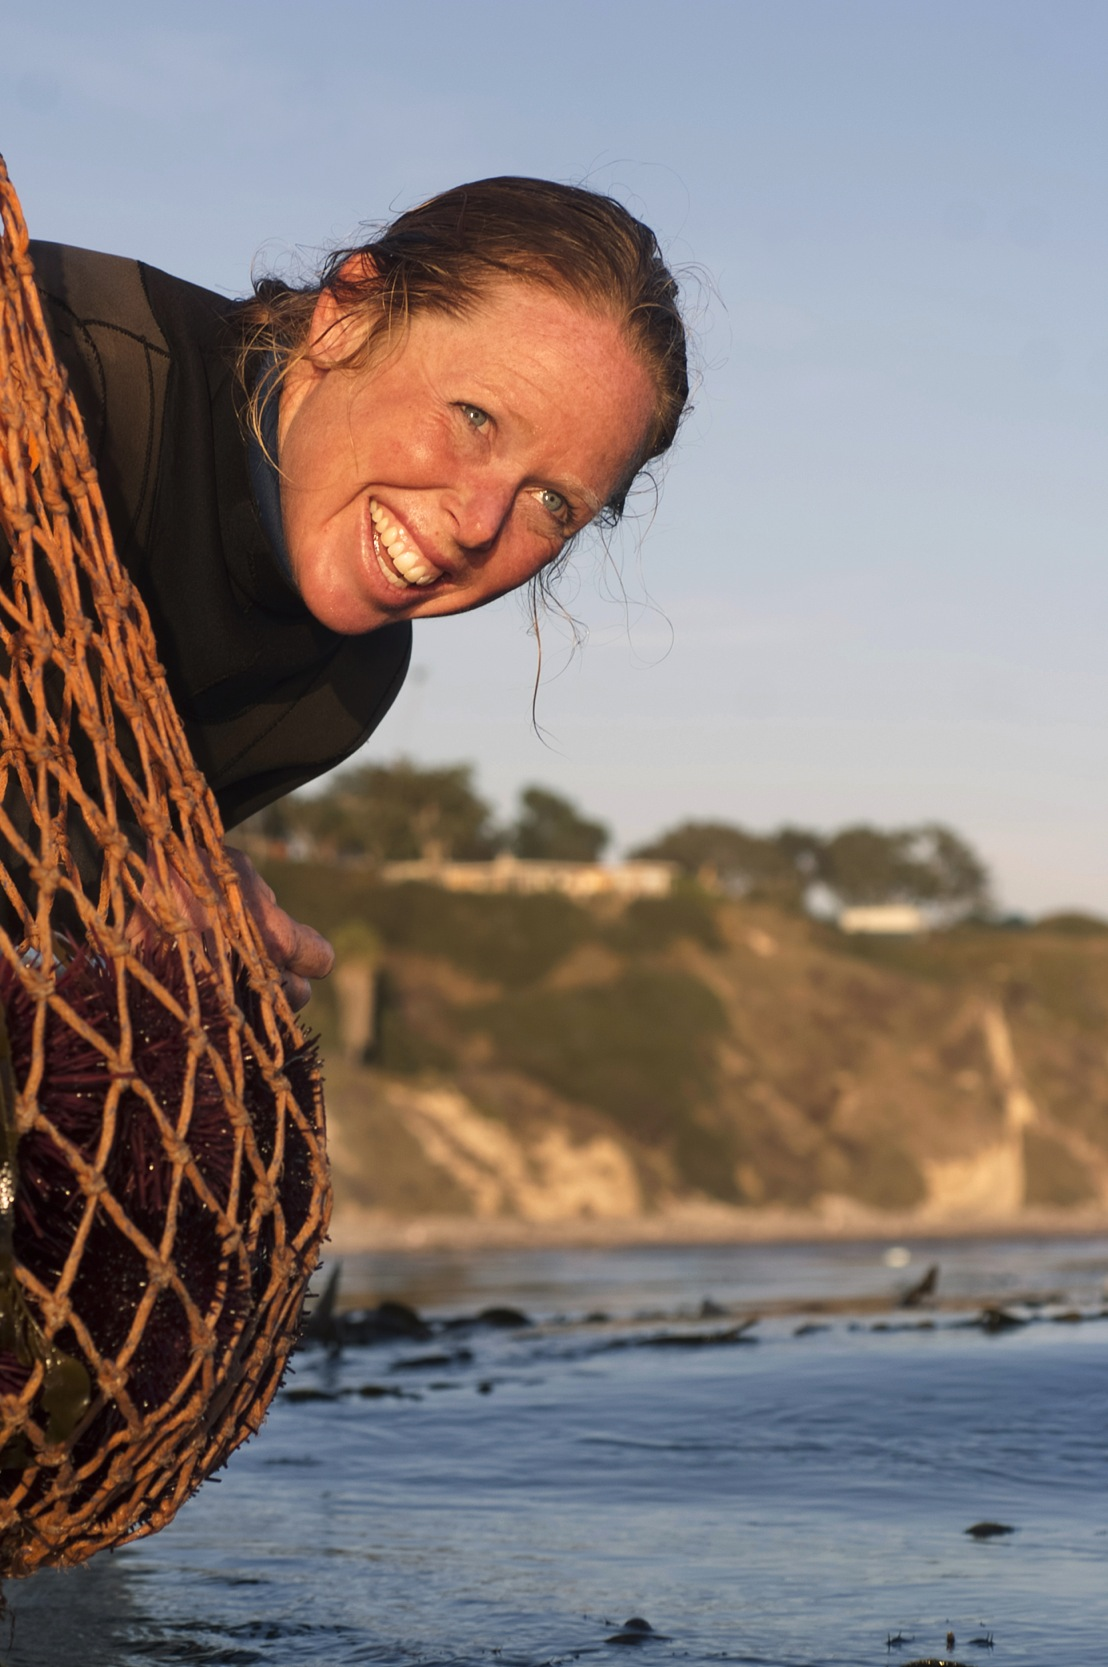 Stephanie Mutz serves as a go-between for fish harvesters and communities in Santa Barbara. Photo: Fran Collin